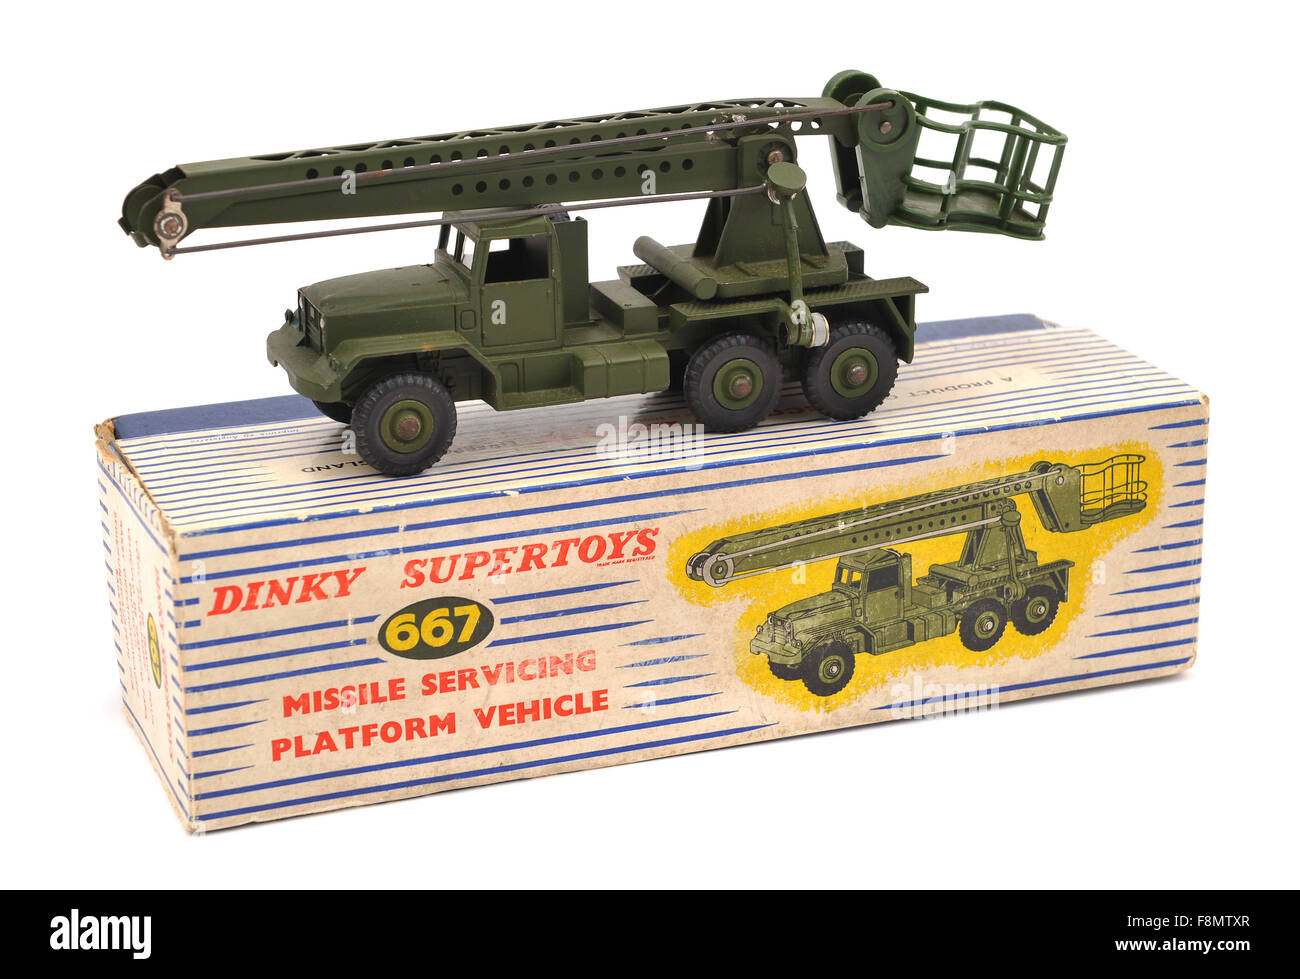 Dinky Supertoys 667 Missile Servicing Platform Vehicle children's toy - Stock Image